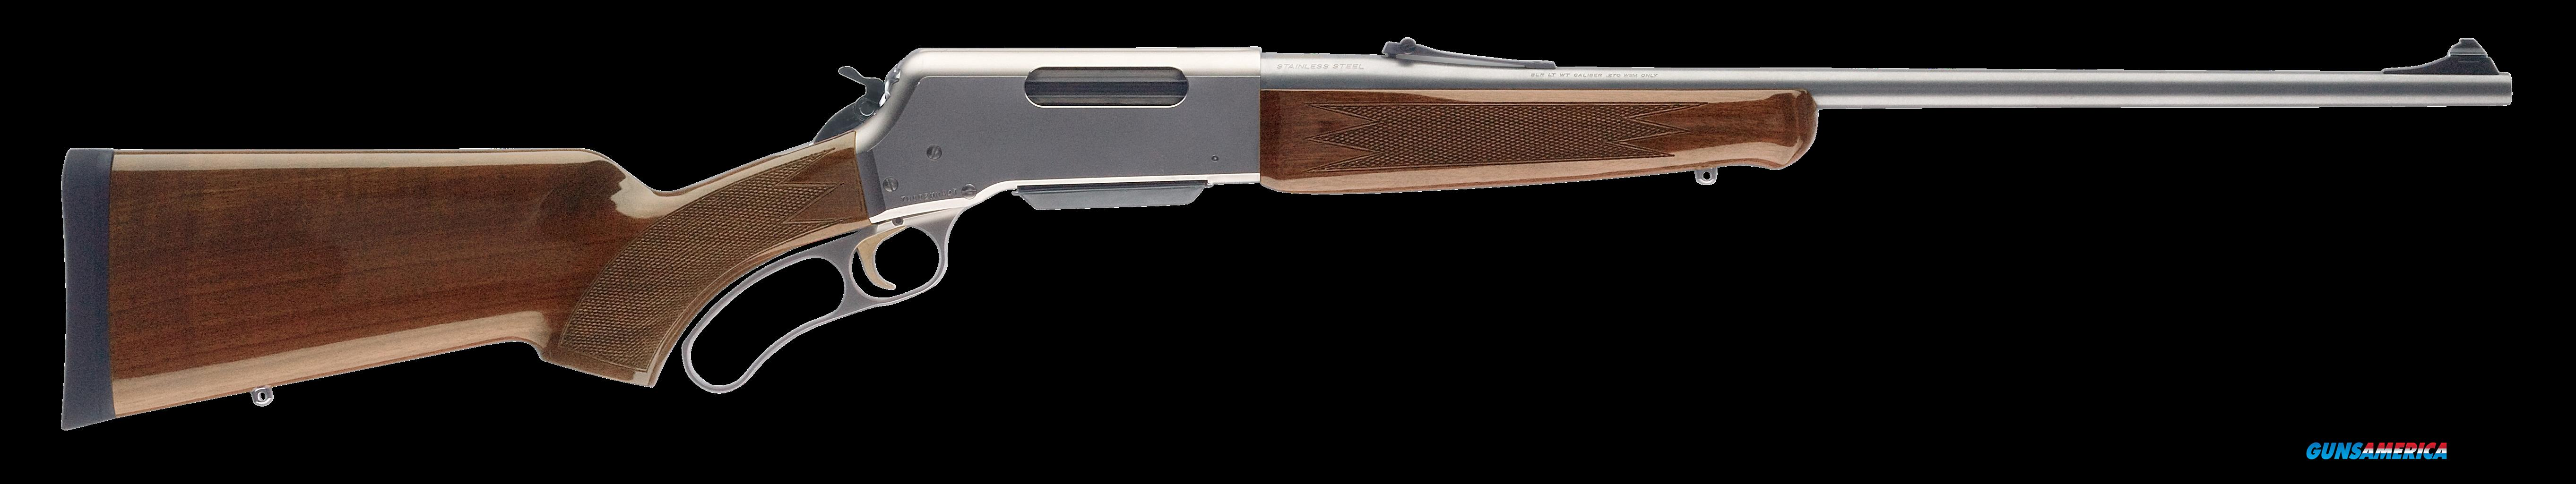 "Browning 034018124 BLR Lightweight Stainless with Pistol Grip Lever 270 Winchester 22"" 4+1 Walnut  Guns > Rifles > Browning Rifles > Lever Action"